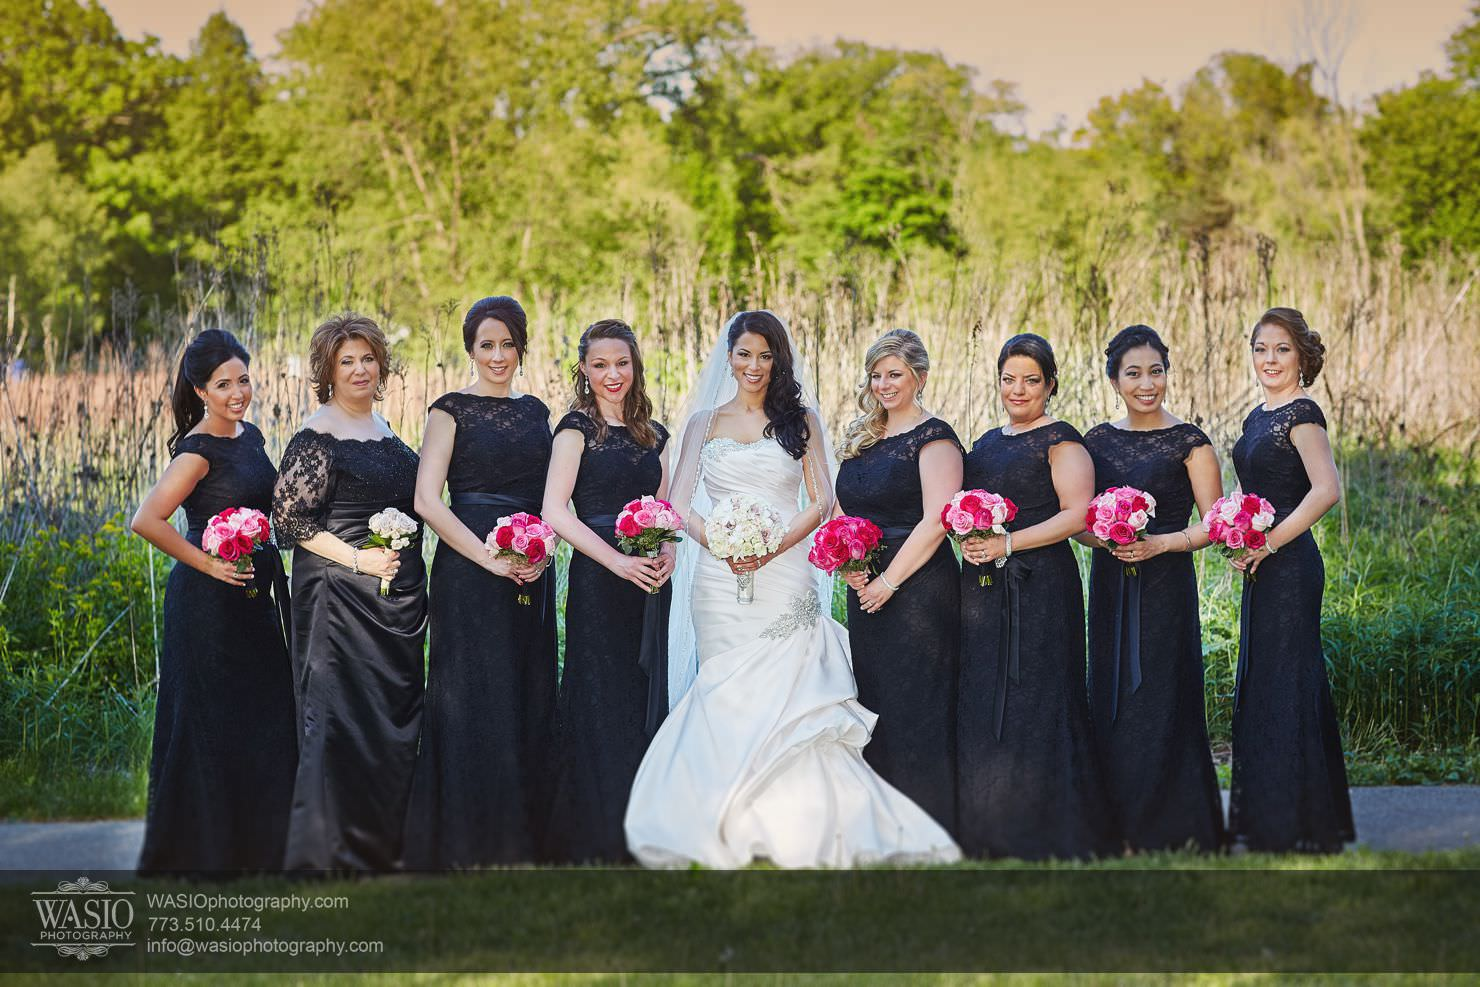 035_Chicago-Spring-Wedding_Chrissy-Andrew_3P4C5935-ts Chicago Spring Wedding - Chrissy + Andrew